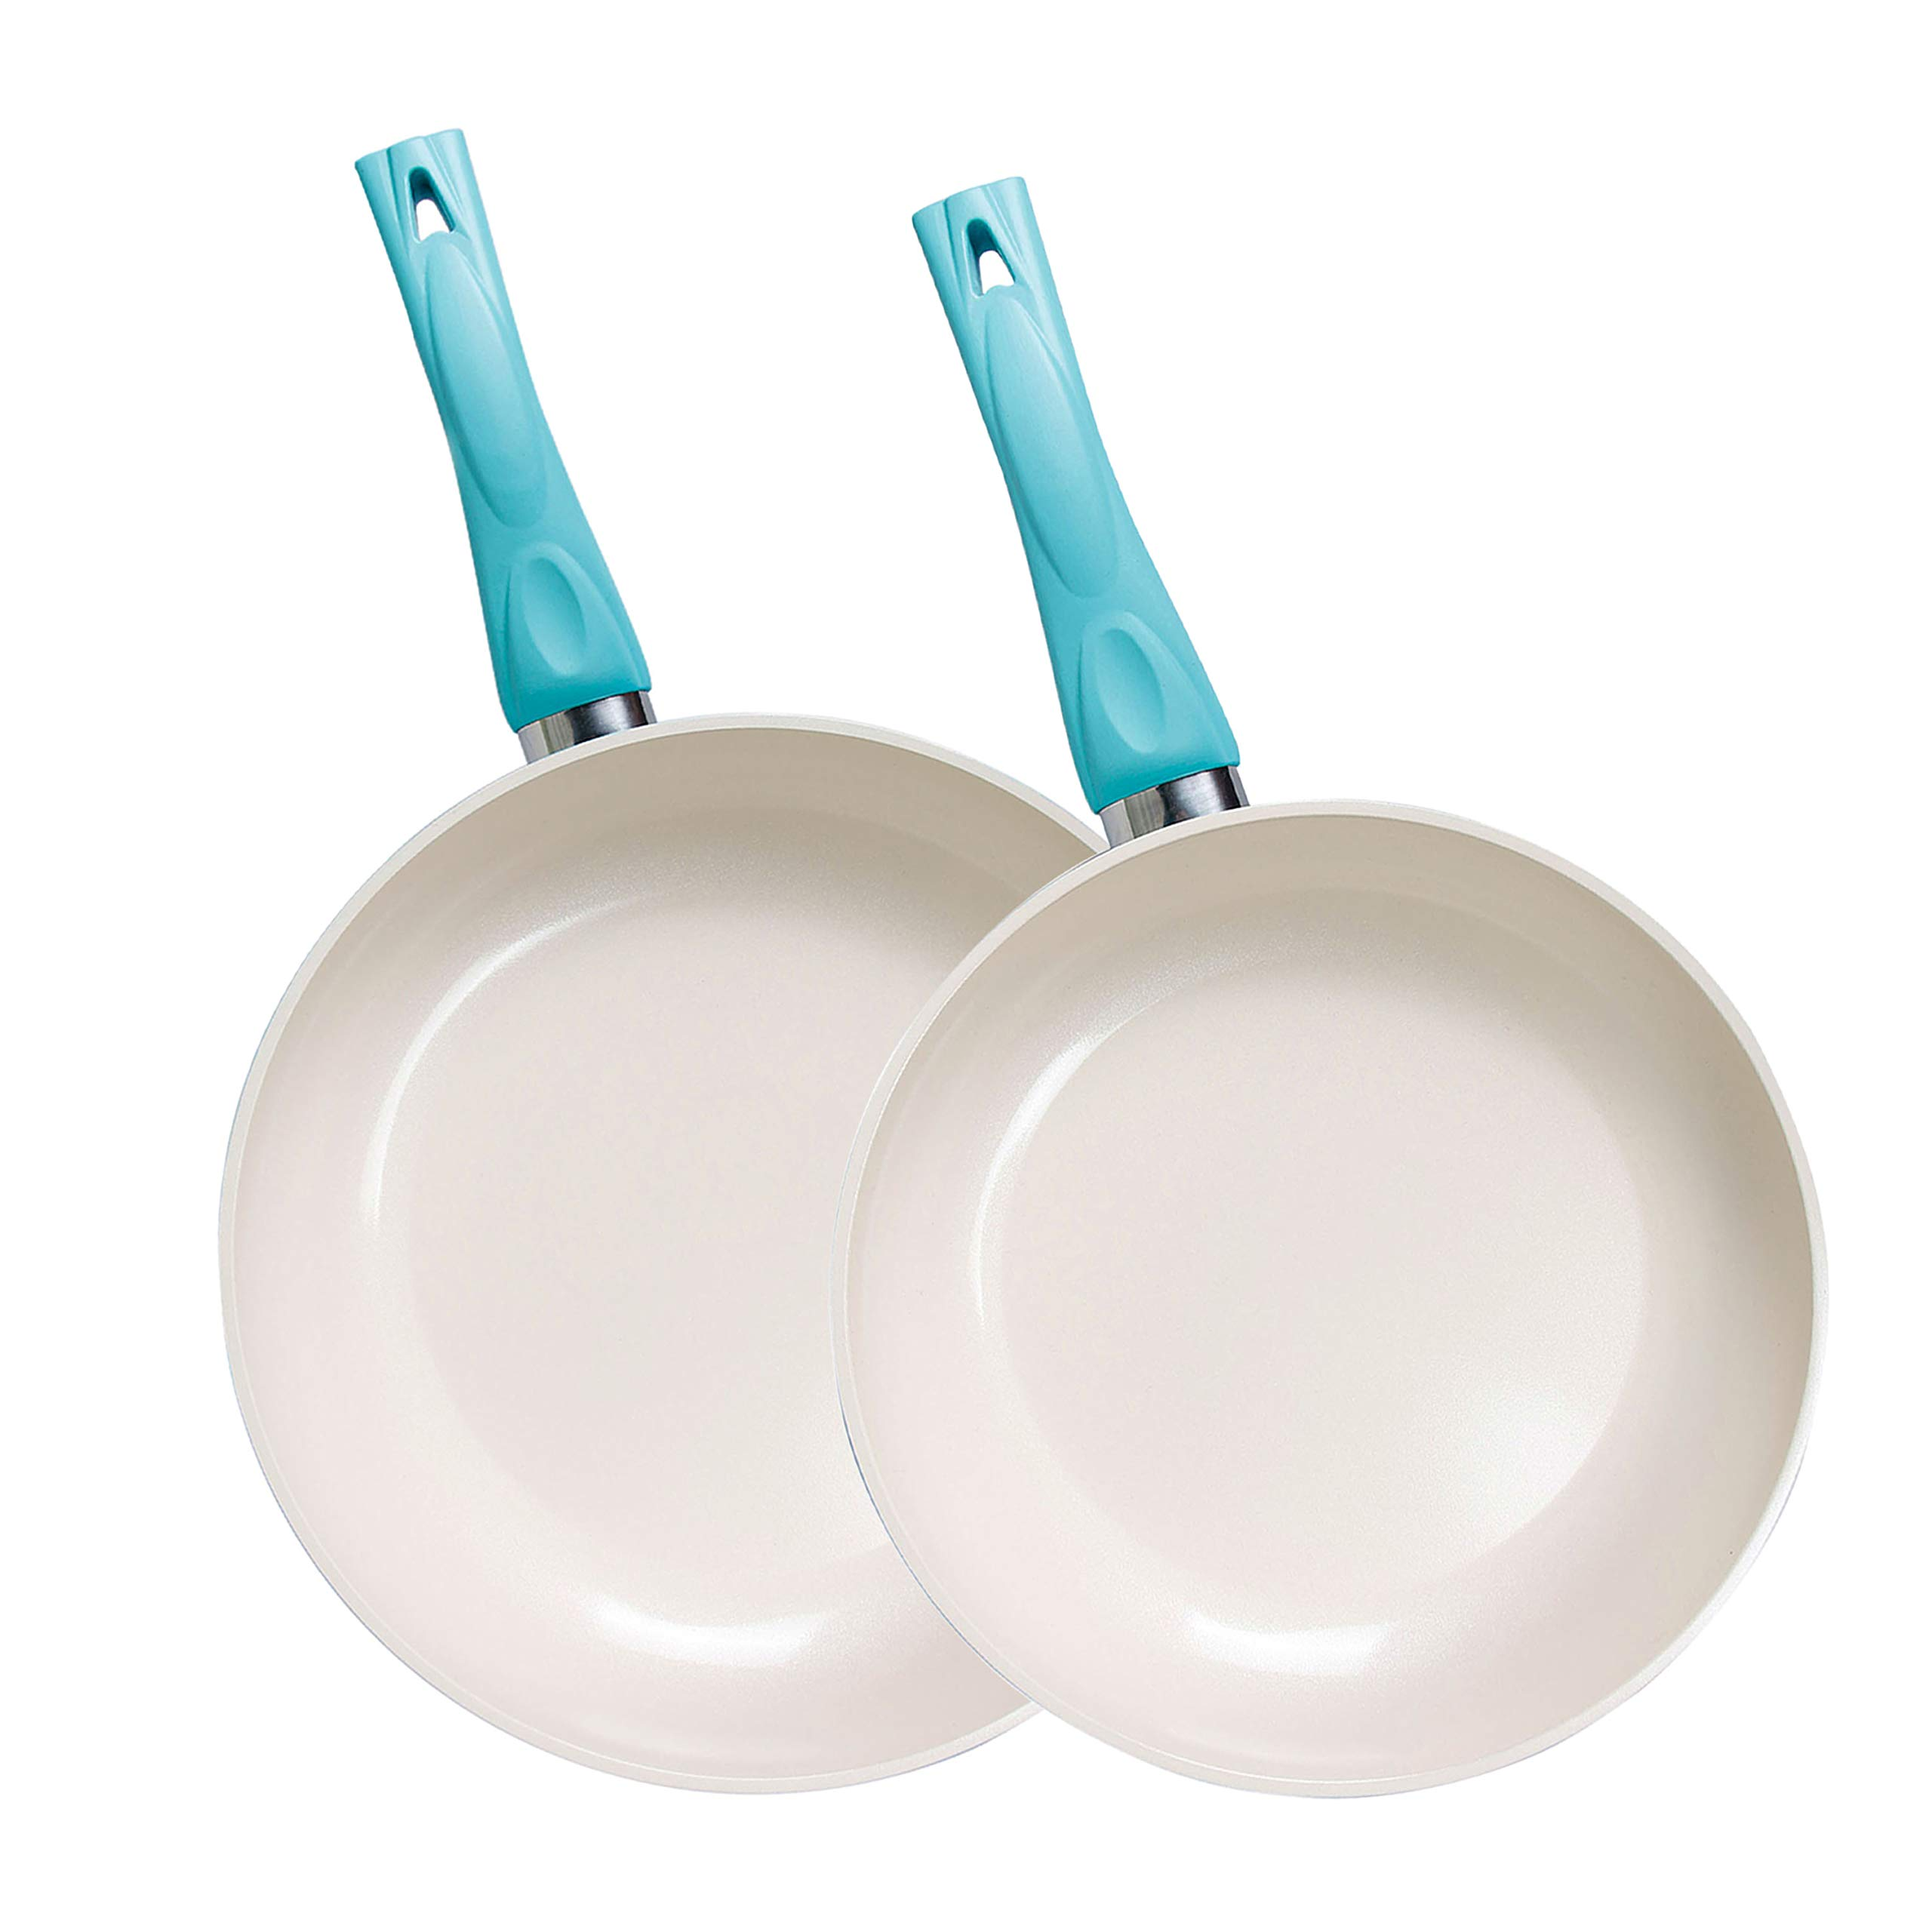 Frying Omelette Pan with Ceramic Non-Stick Coating and Soft Grip Skillet(100% PTFE, PFOA and APEO Free) (2, 10''&12'')